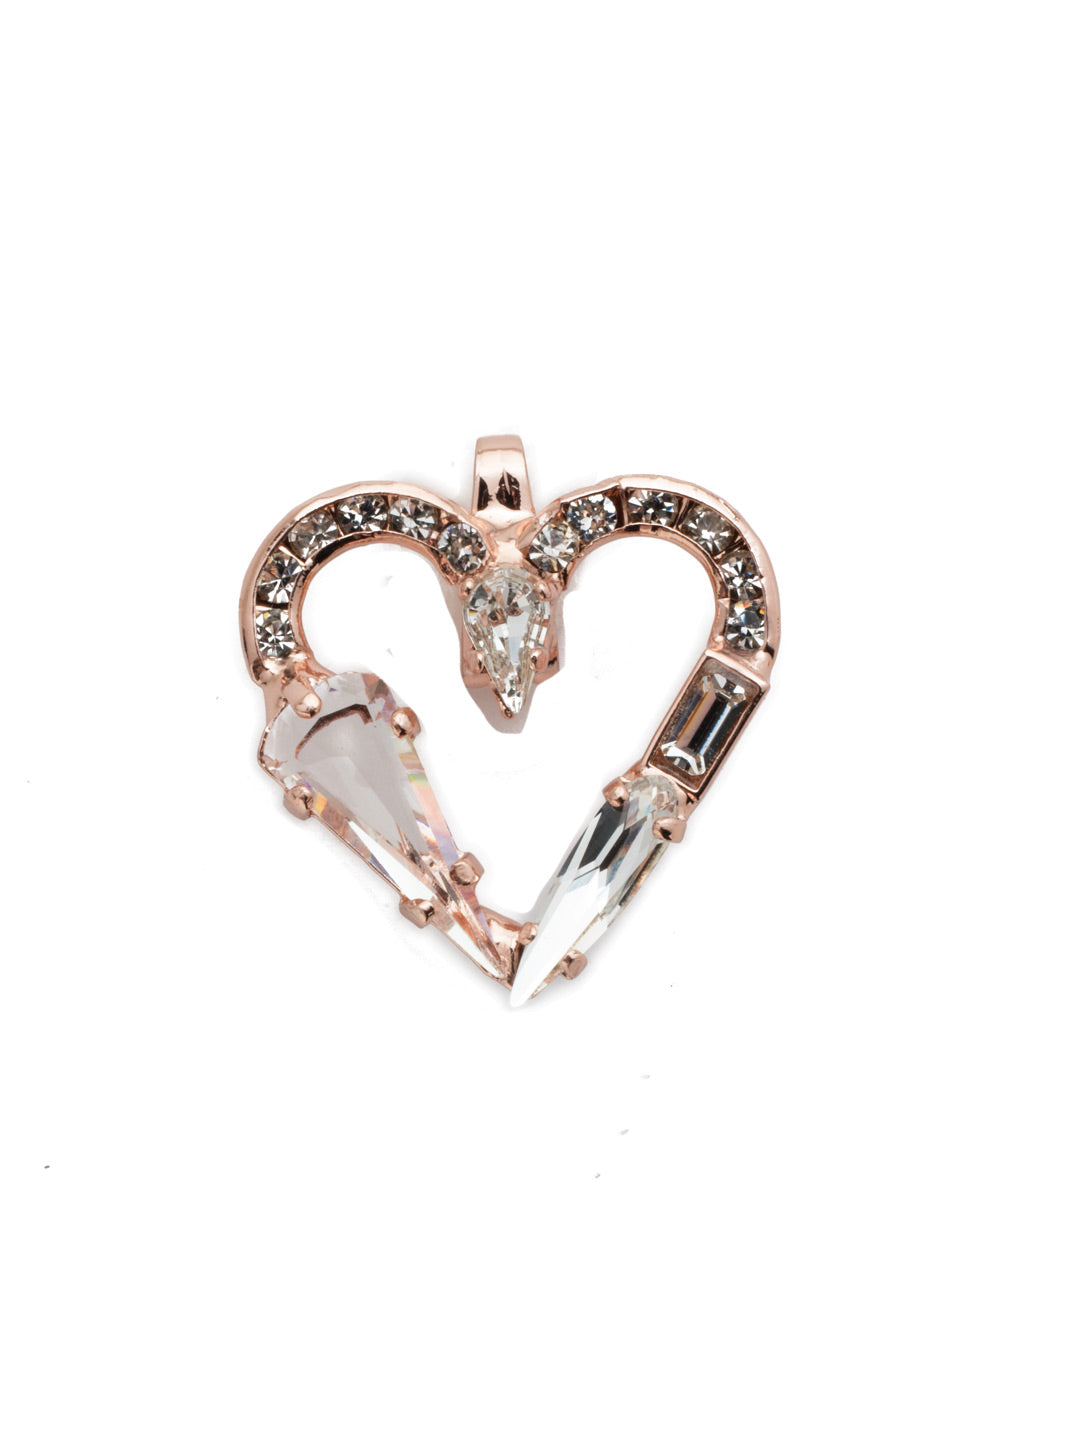 Crystal Heart Charm Charm Other Accessory - CES40RGCRY